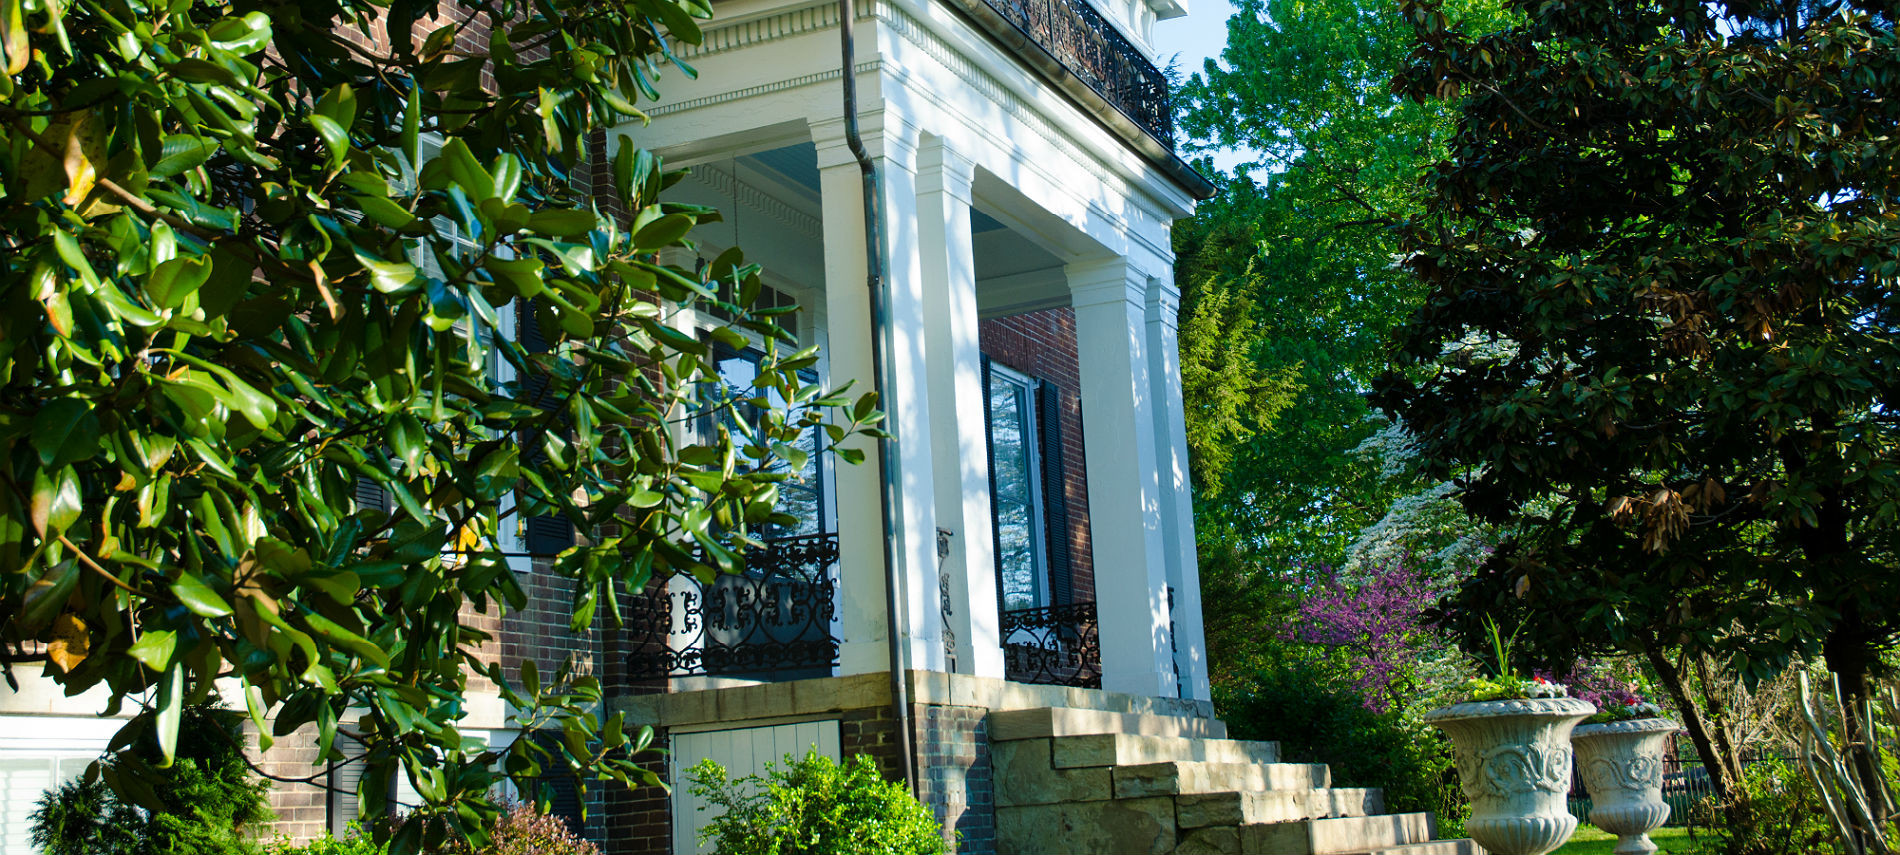 Bourbon Manor B&B's portico entrance with white columns and stone staircase flanked by two large urn planters